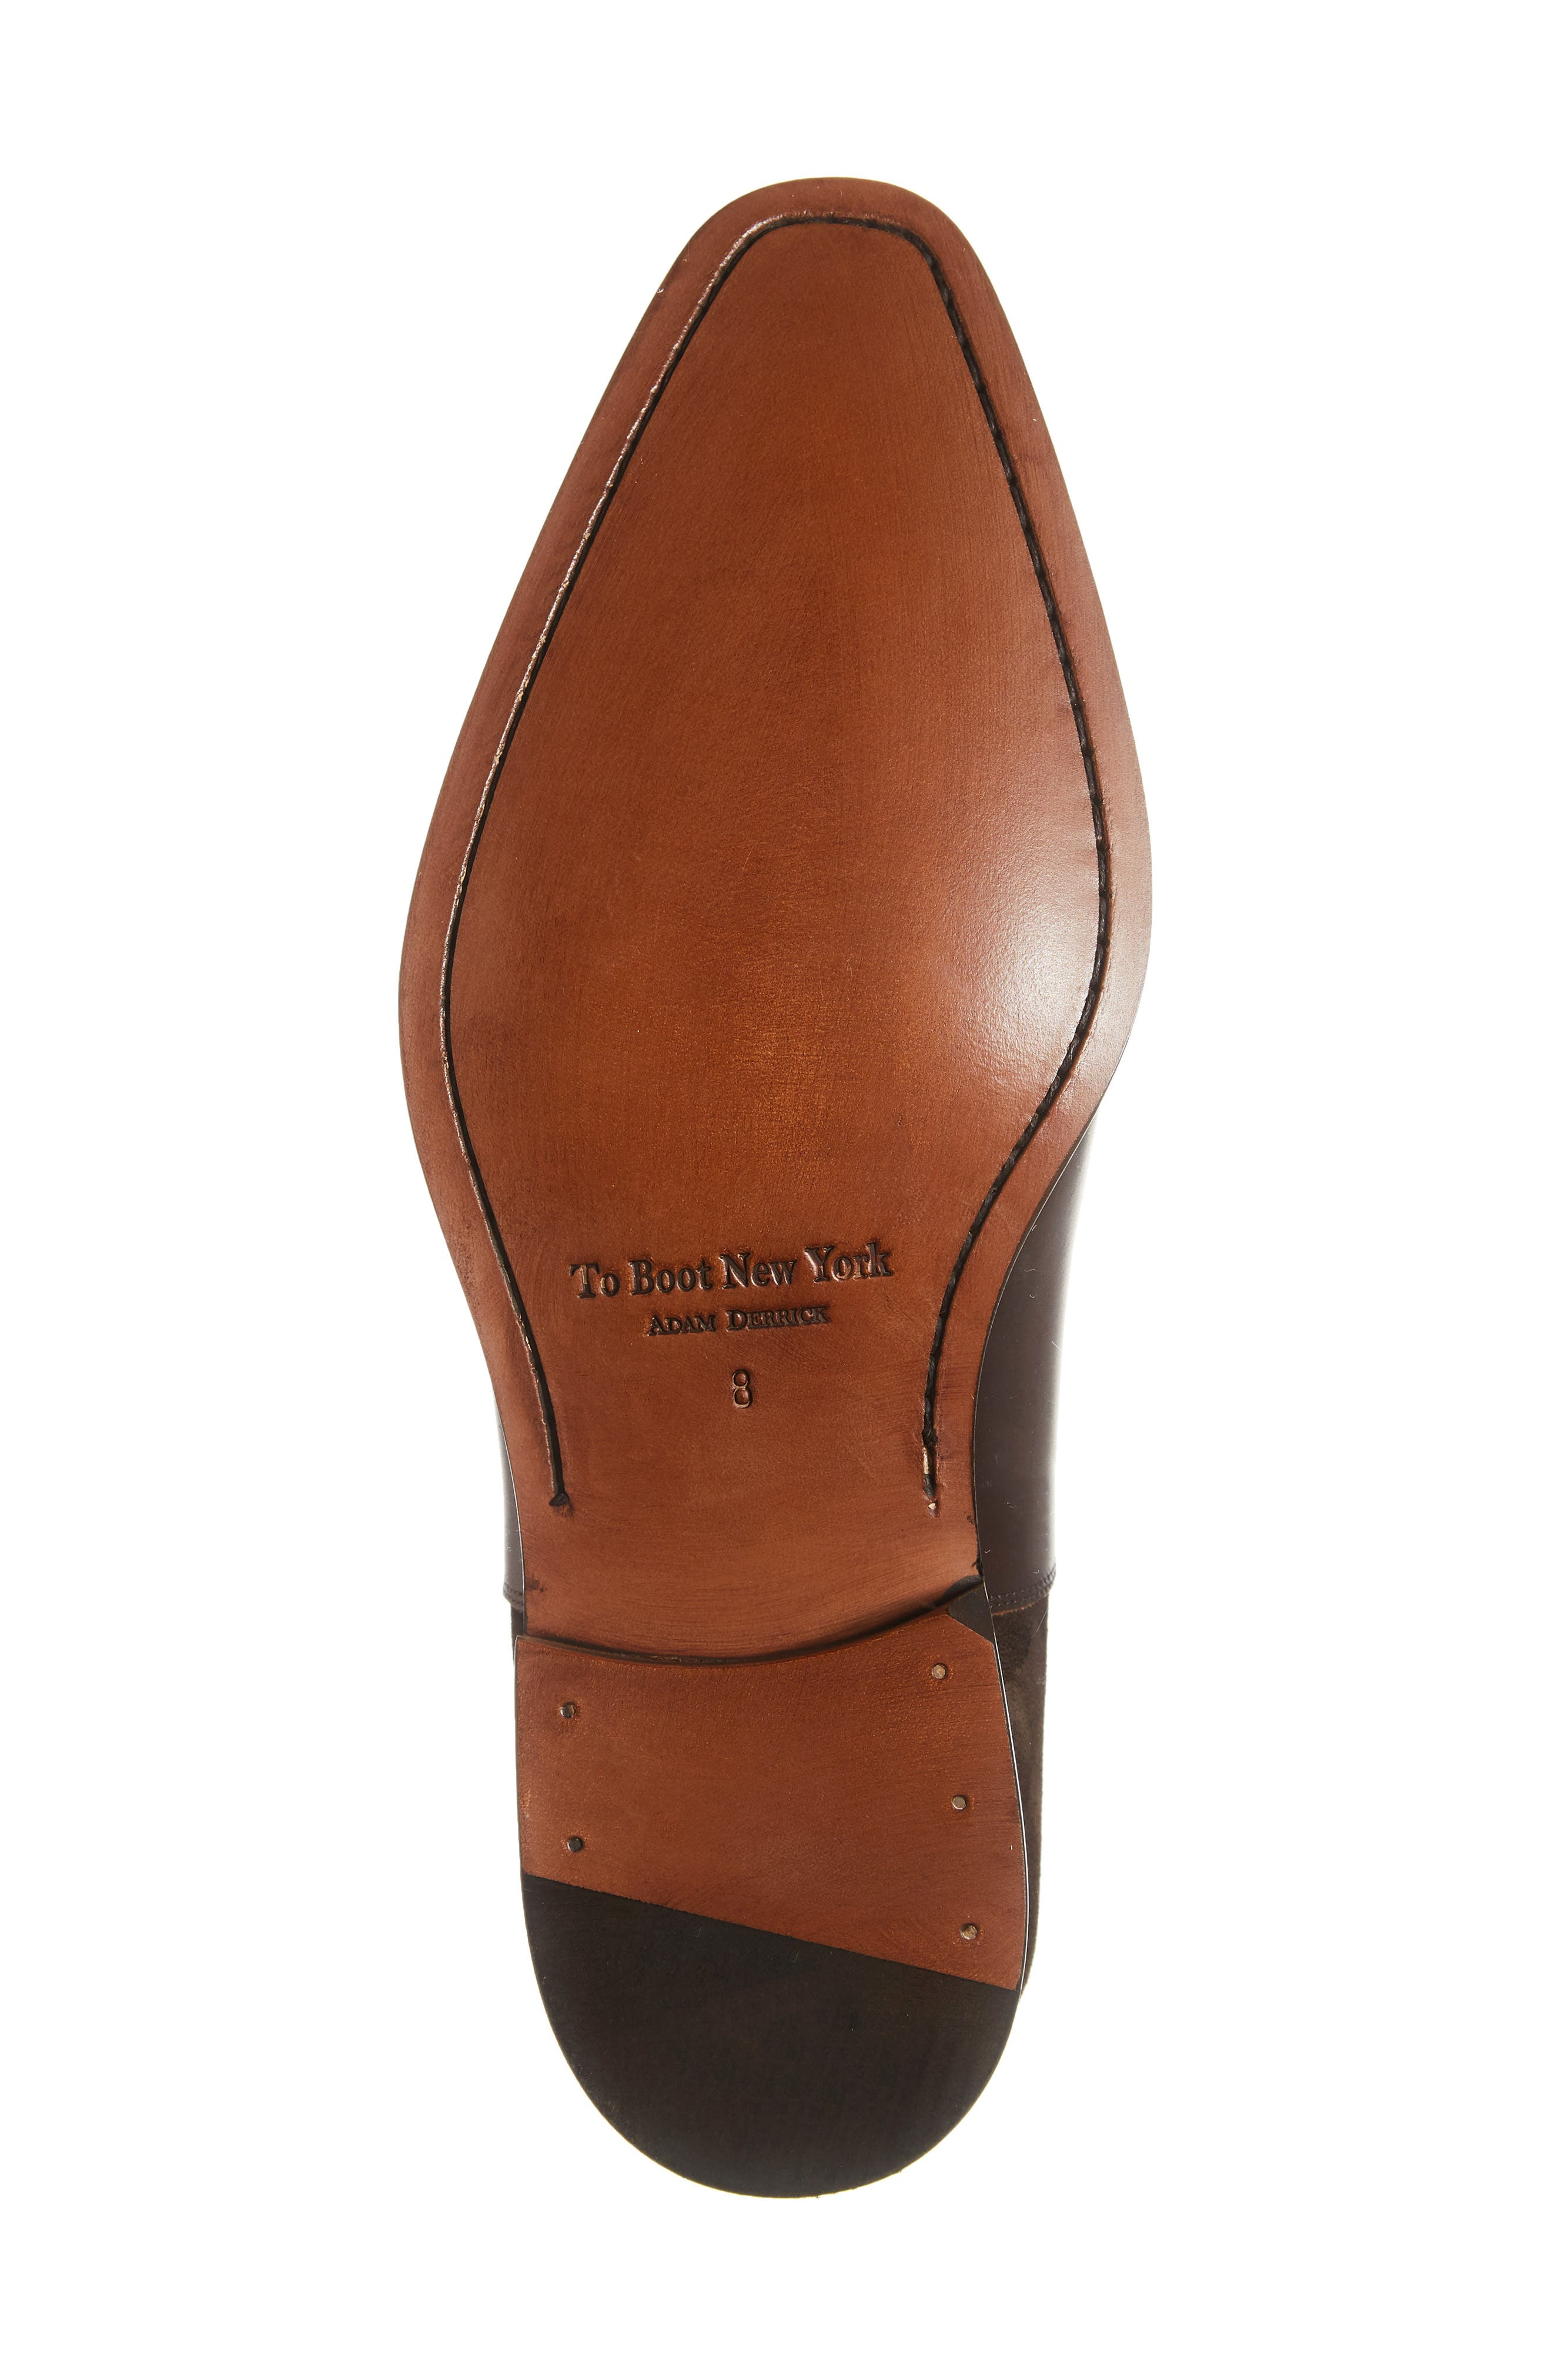 Amadora Cap Toe Oxford,                             Alternate thumbnail 6, color,                             BERRY/ BROWN LEATHER